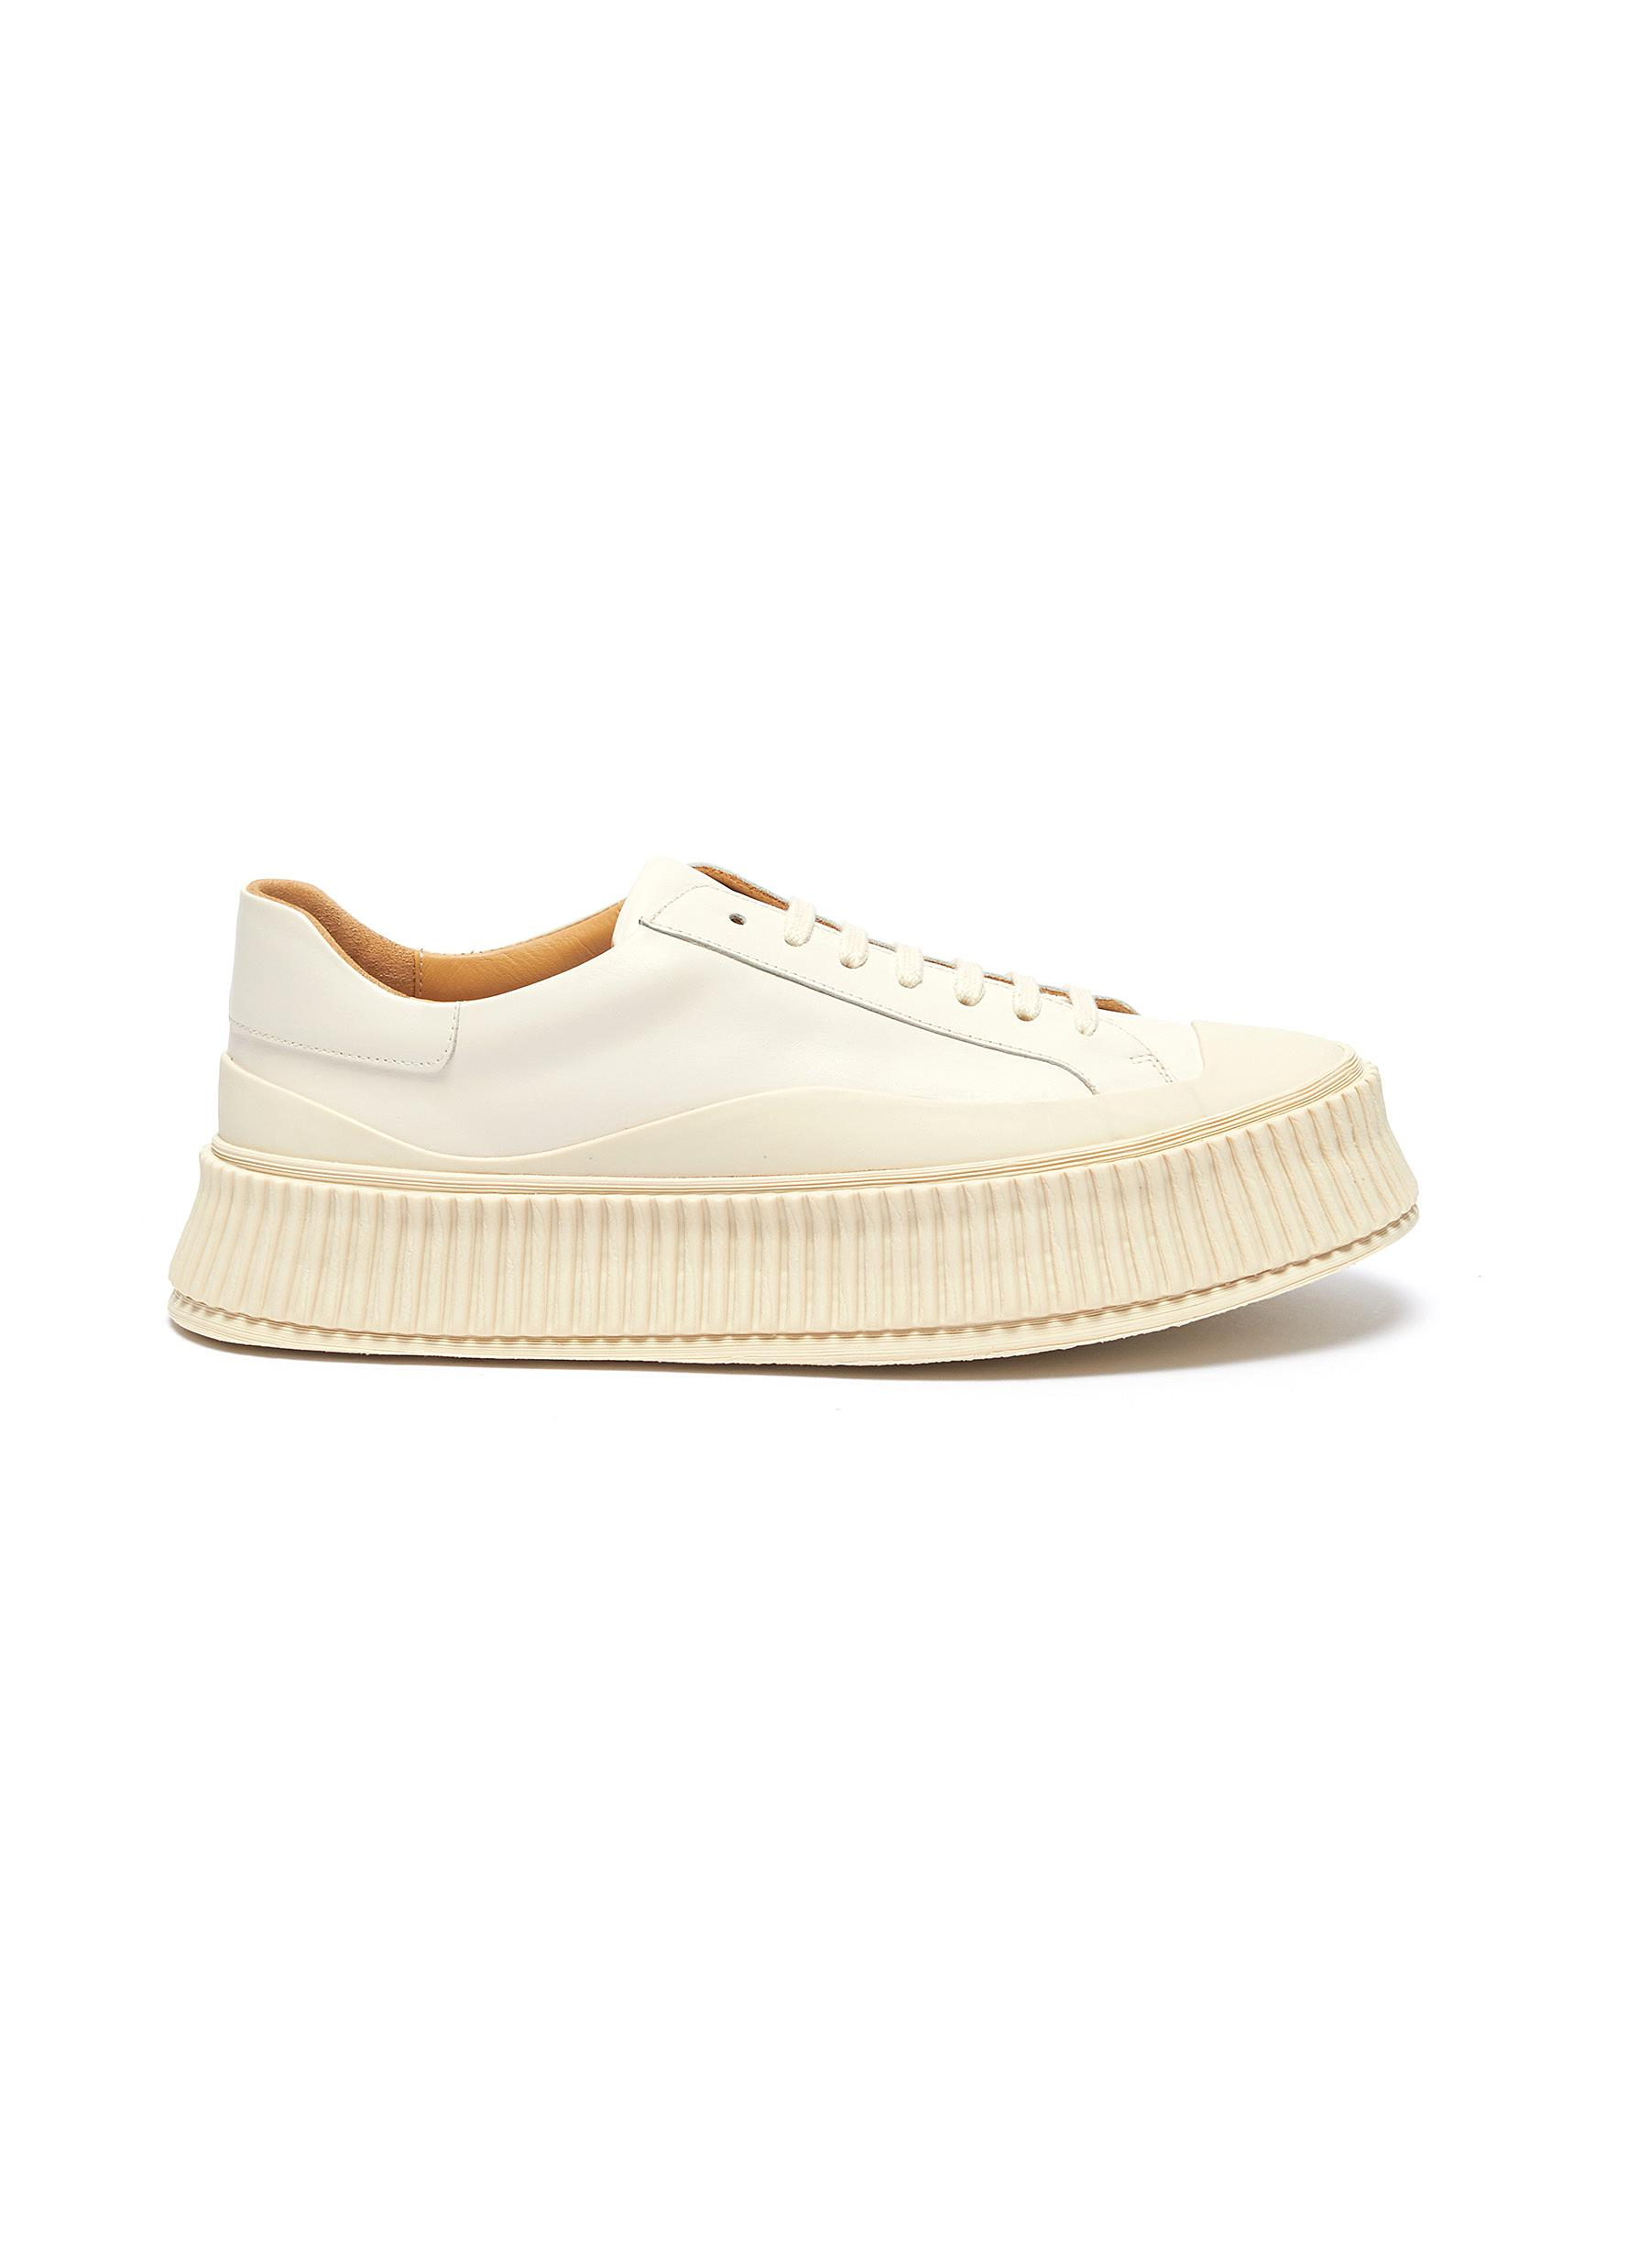 Jil Sander Sneakers Chunky sole leather sneakers